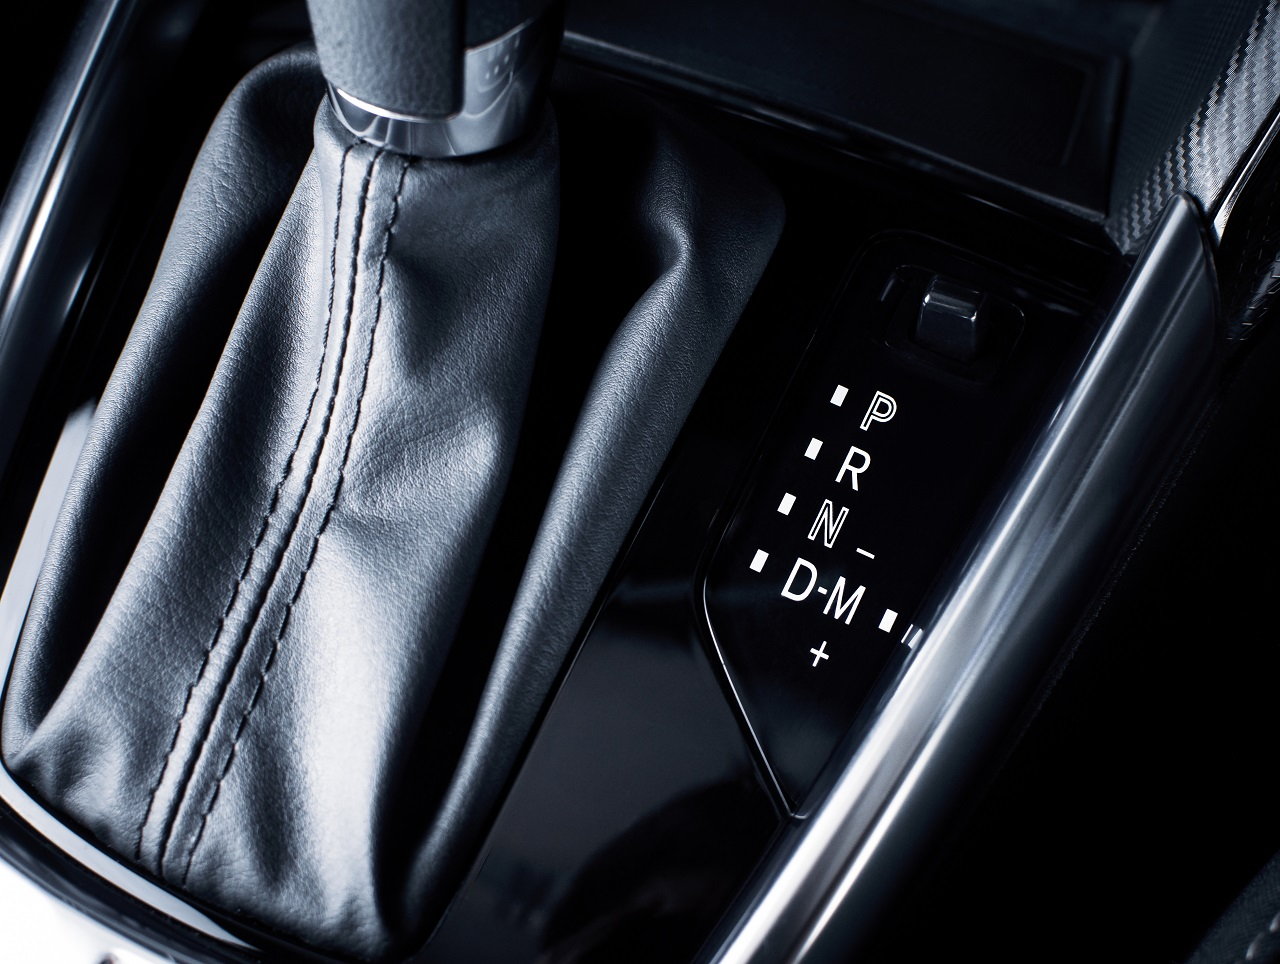 Close up of a car's gear shift